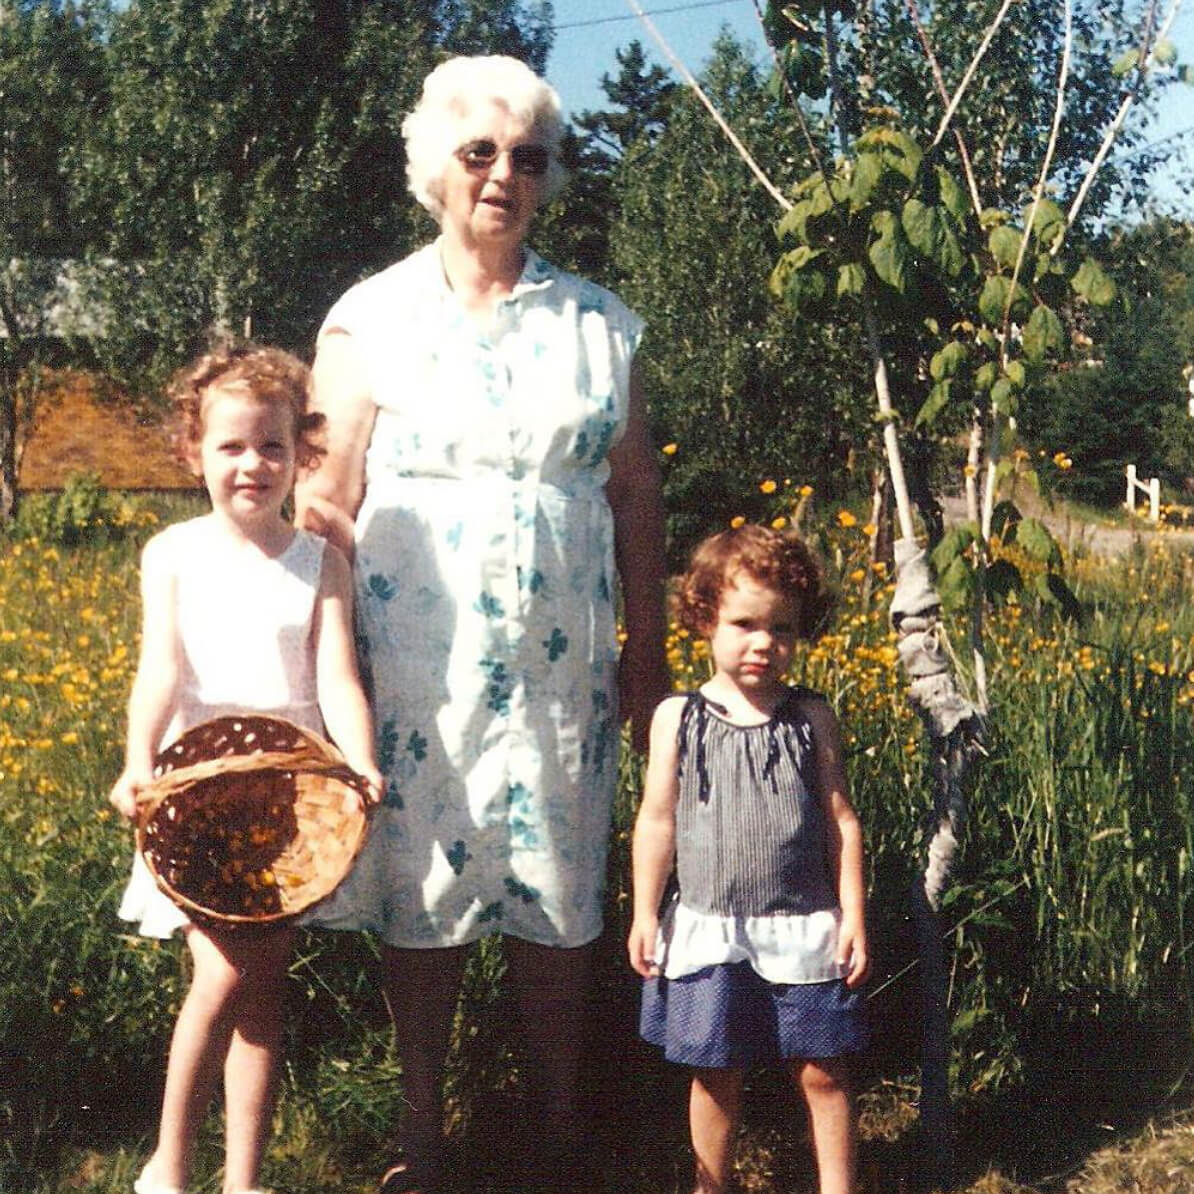 Grandma and two girls in a garden